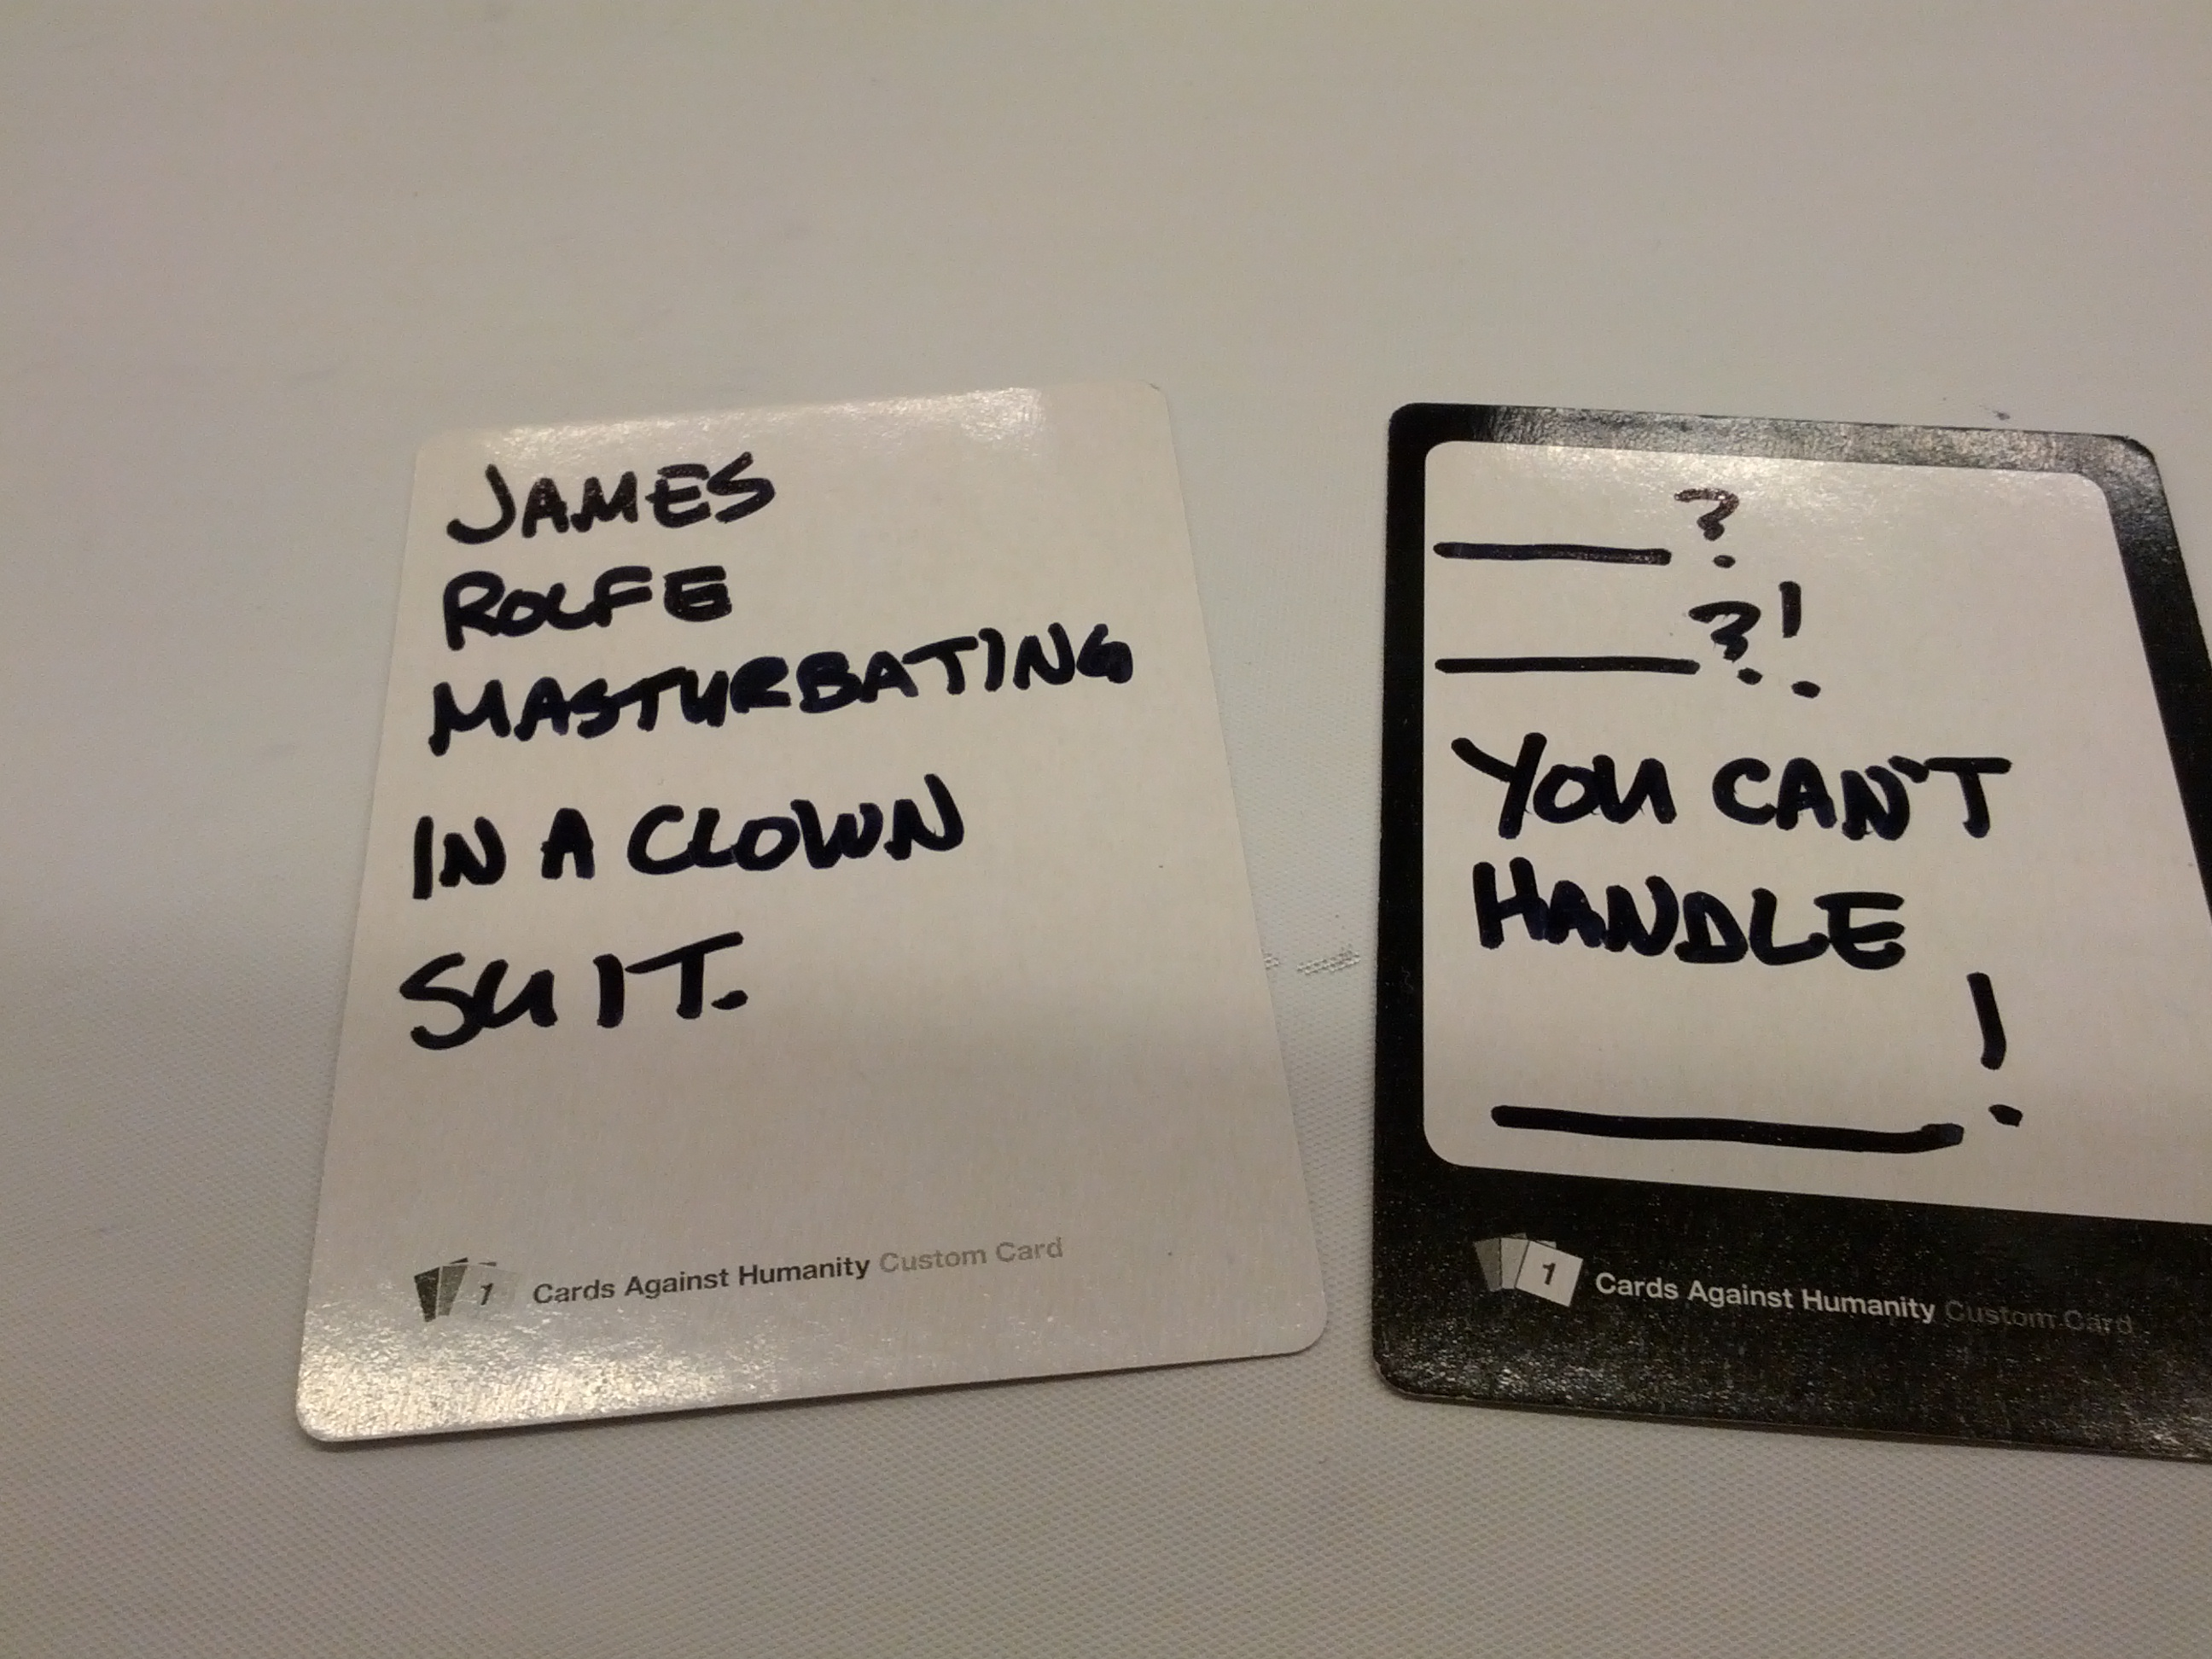 Custom Cards Against Humanity Cards – WIL WHEATON dot NET